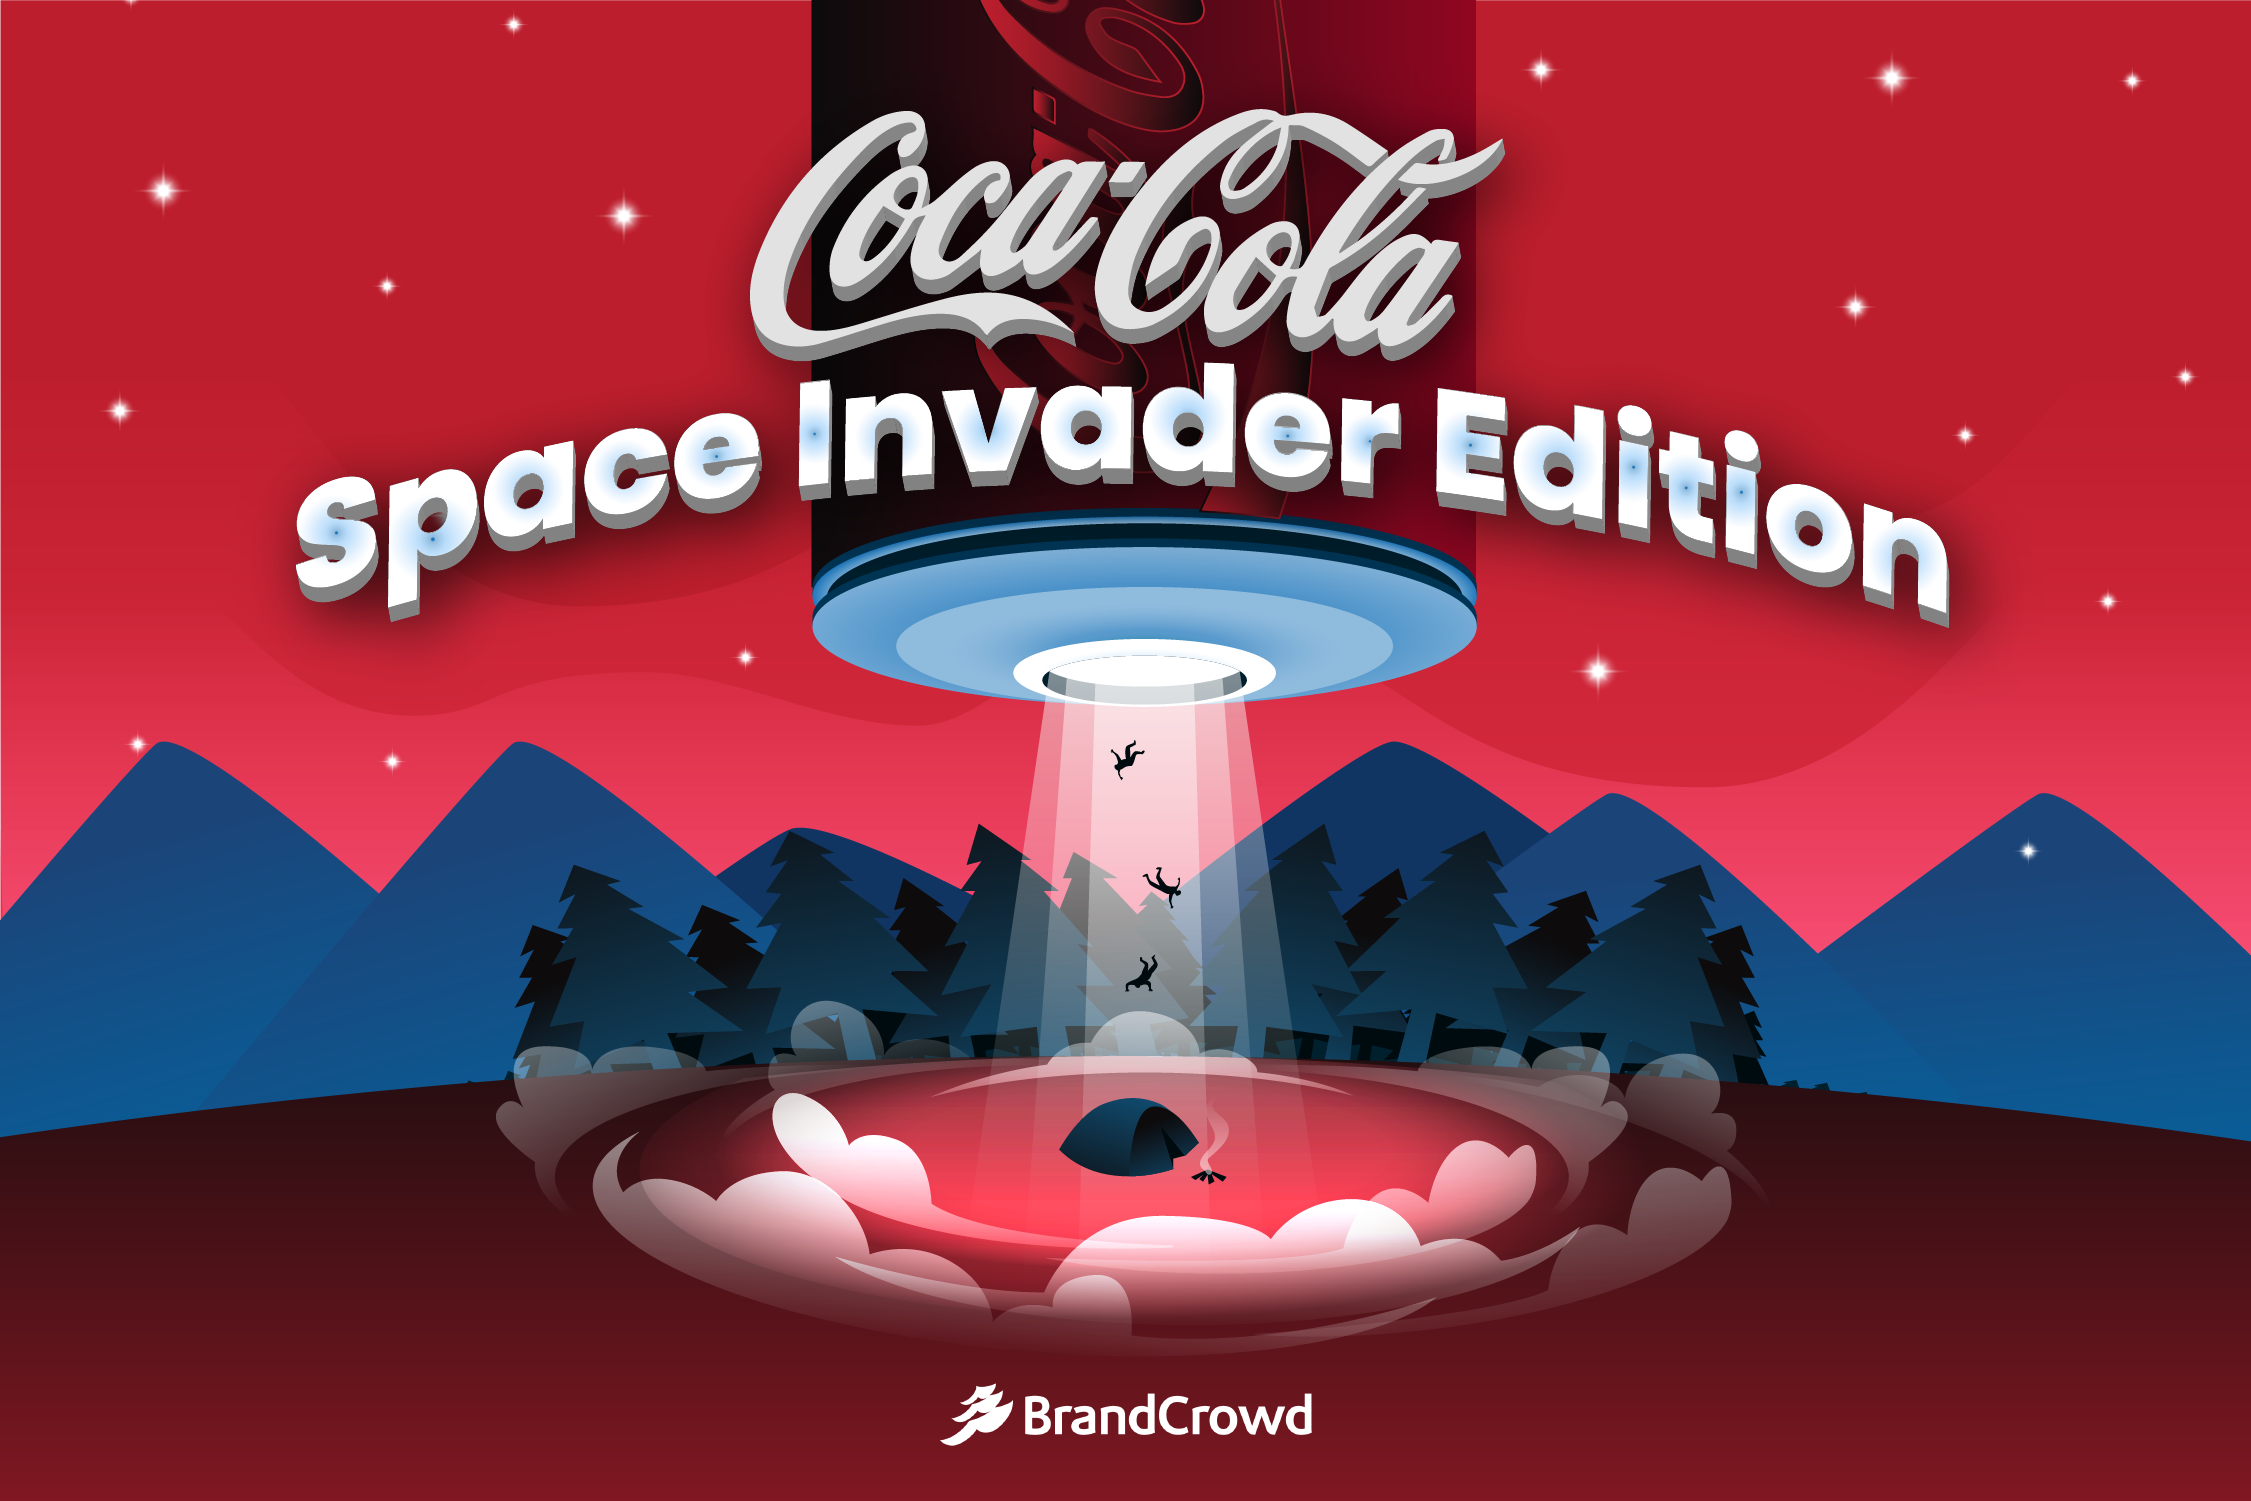 the-header-features-an-iilustration-of-a-coke-can-rocket-ascending-with-the-blog-title-typography-found-above-the-image